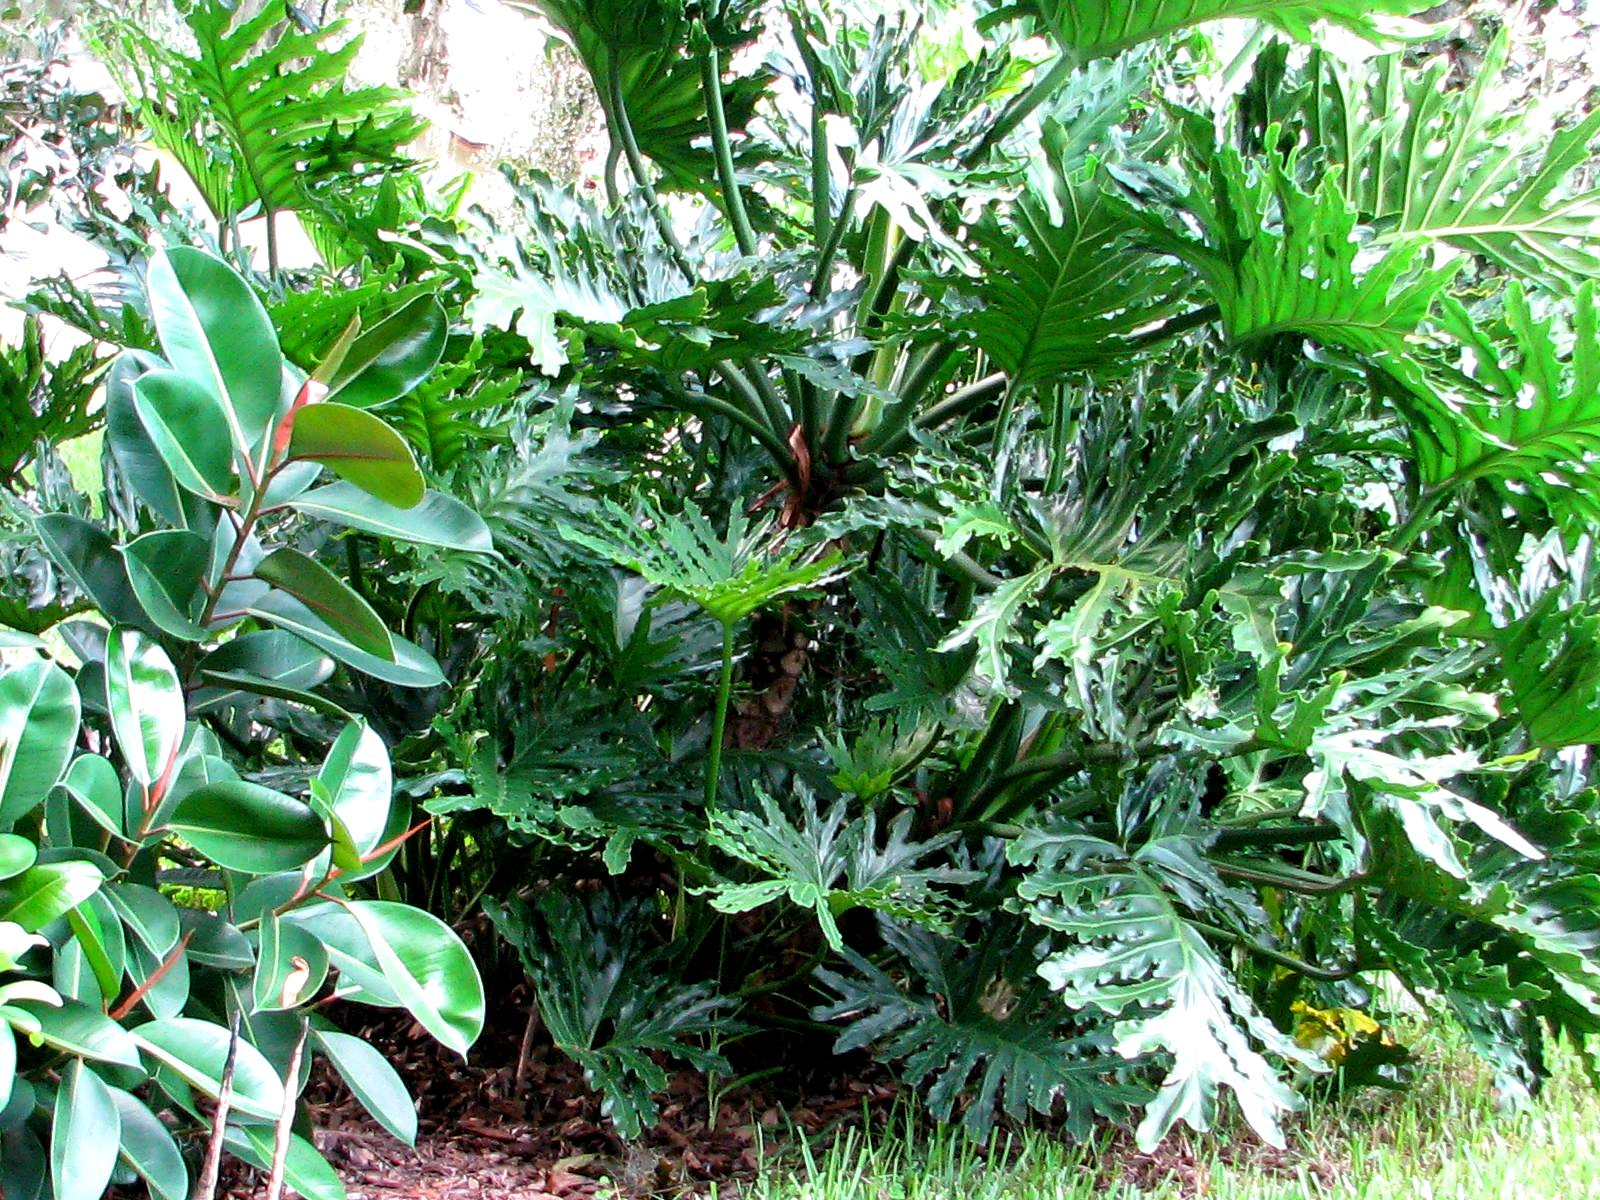 Large Leaf Houseplant Large Leaf Tropical Plants Pictures To Pin On Pinterest